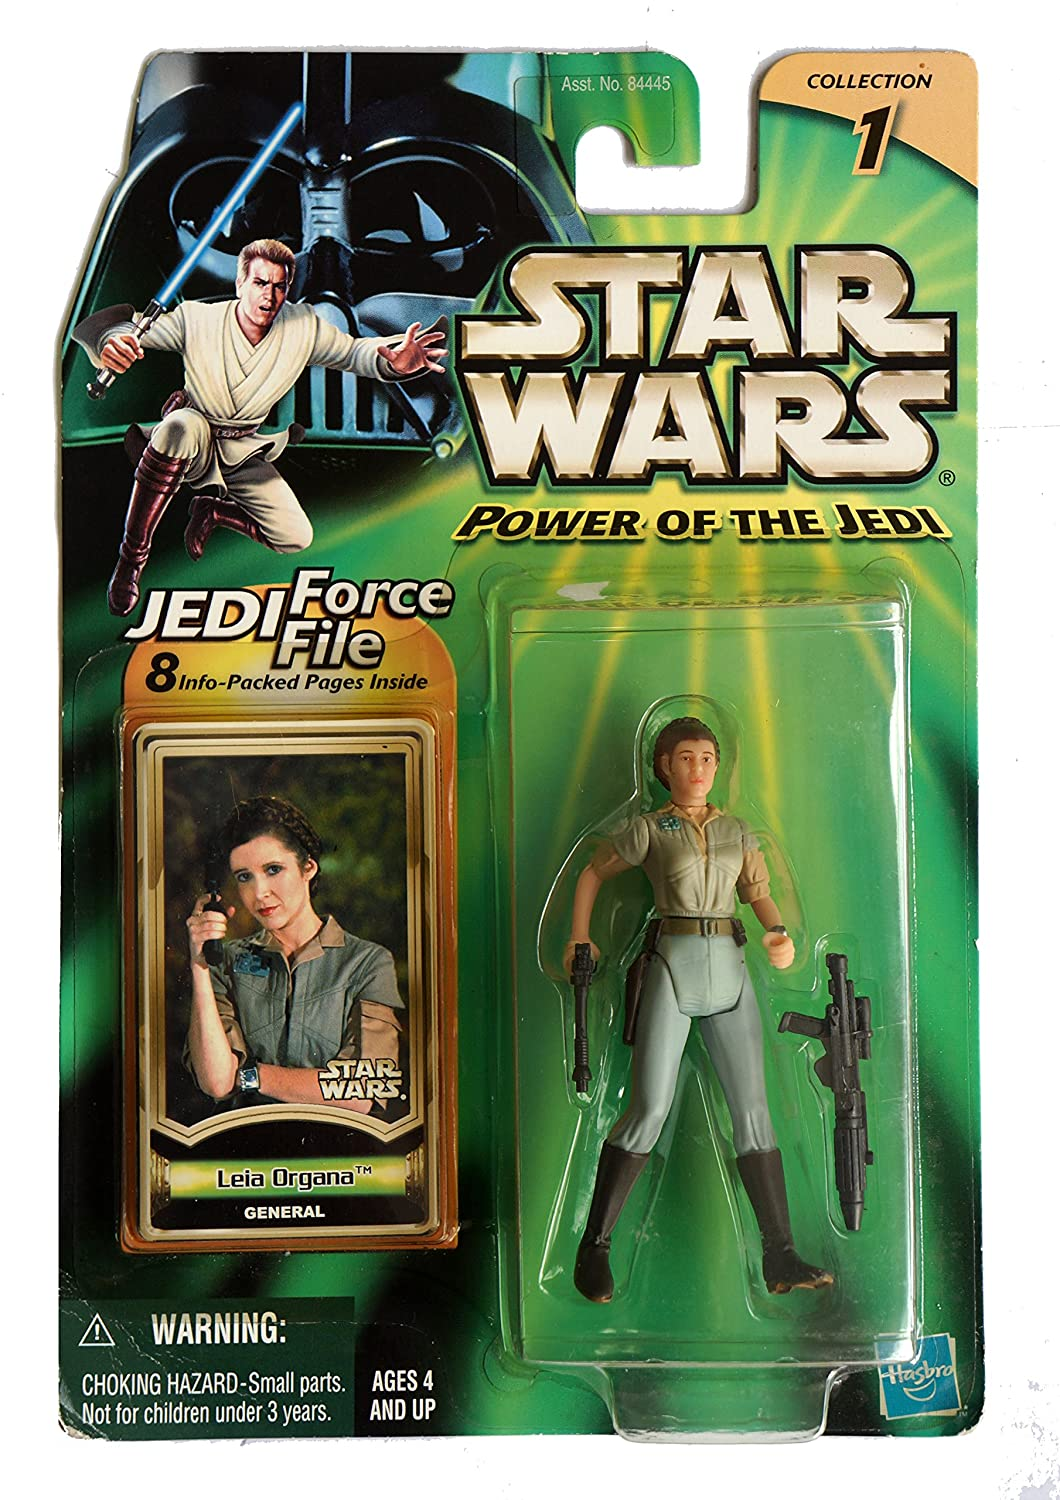 Star Wars Power of the Jedi General Leia Organa Action Figure Kenner